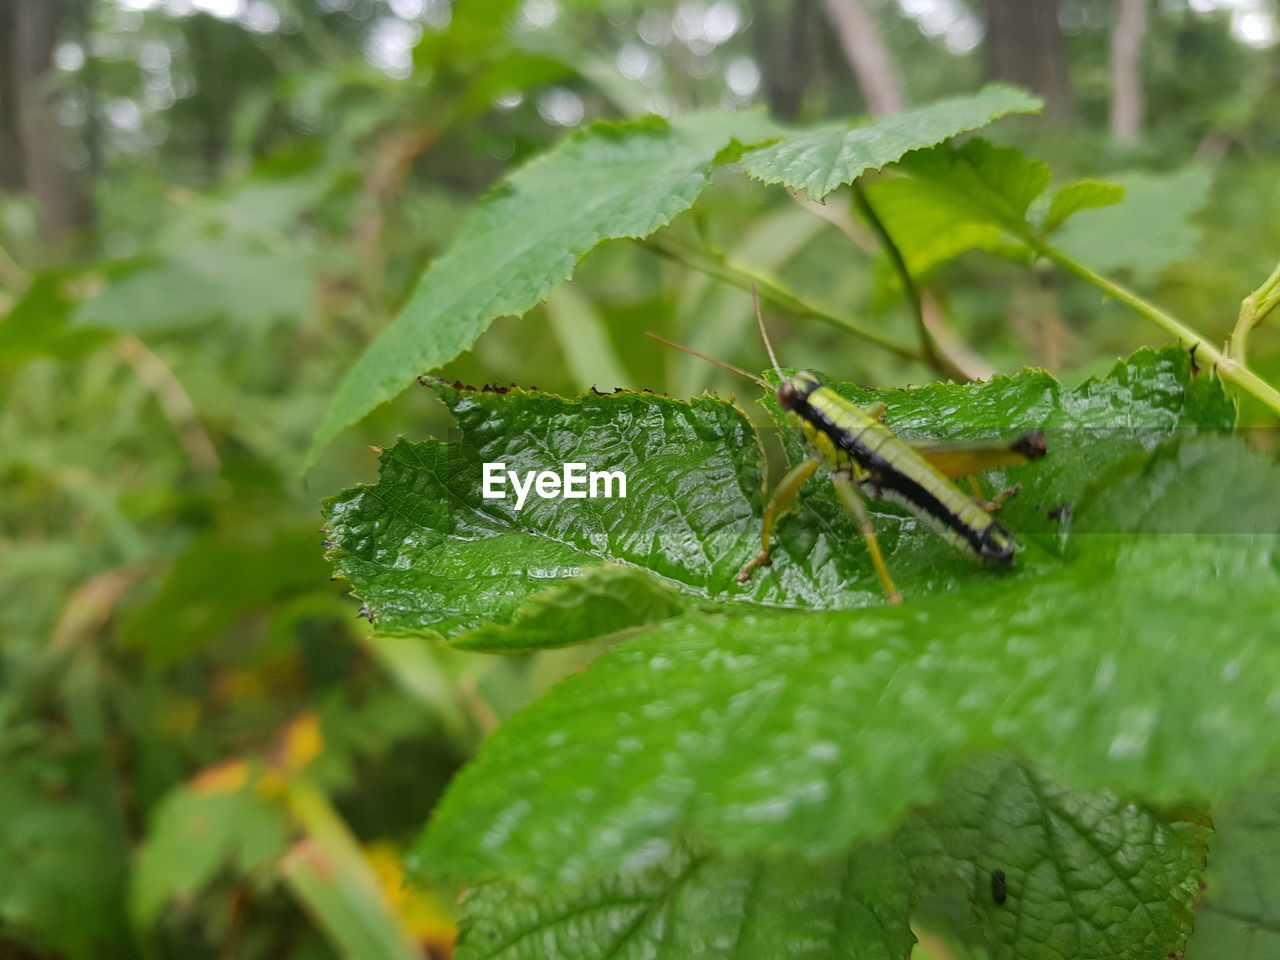 leaf, plant part, green color, animal, animal themes, invertebrate, insect, animal wildlife, one animal, animals in the wild, plant, nature, close-up, selective focus, growth, no people, day, beauty in nature, outdoors, animal body part, leaves